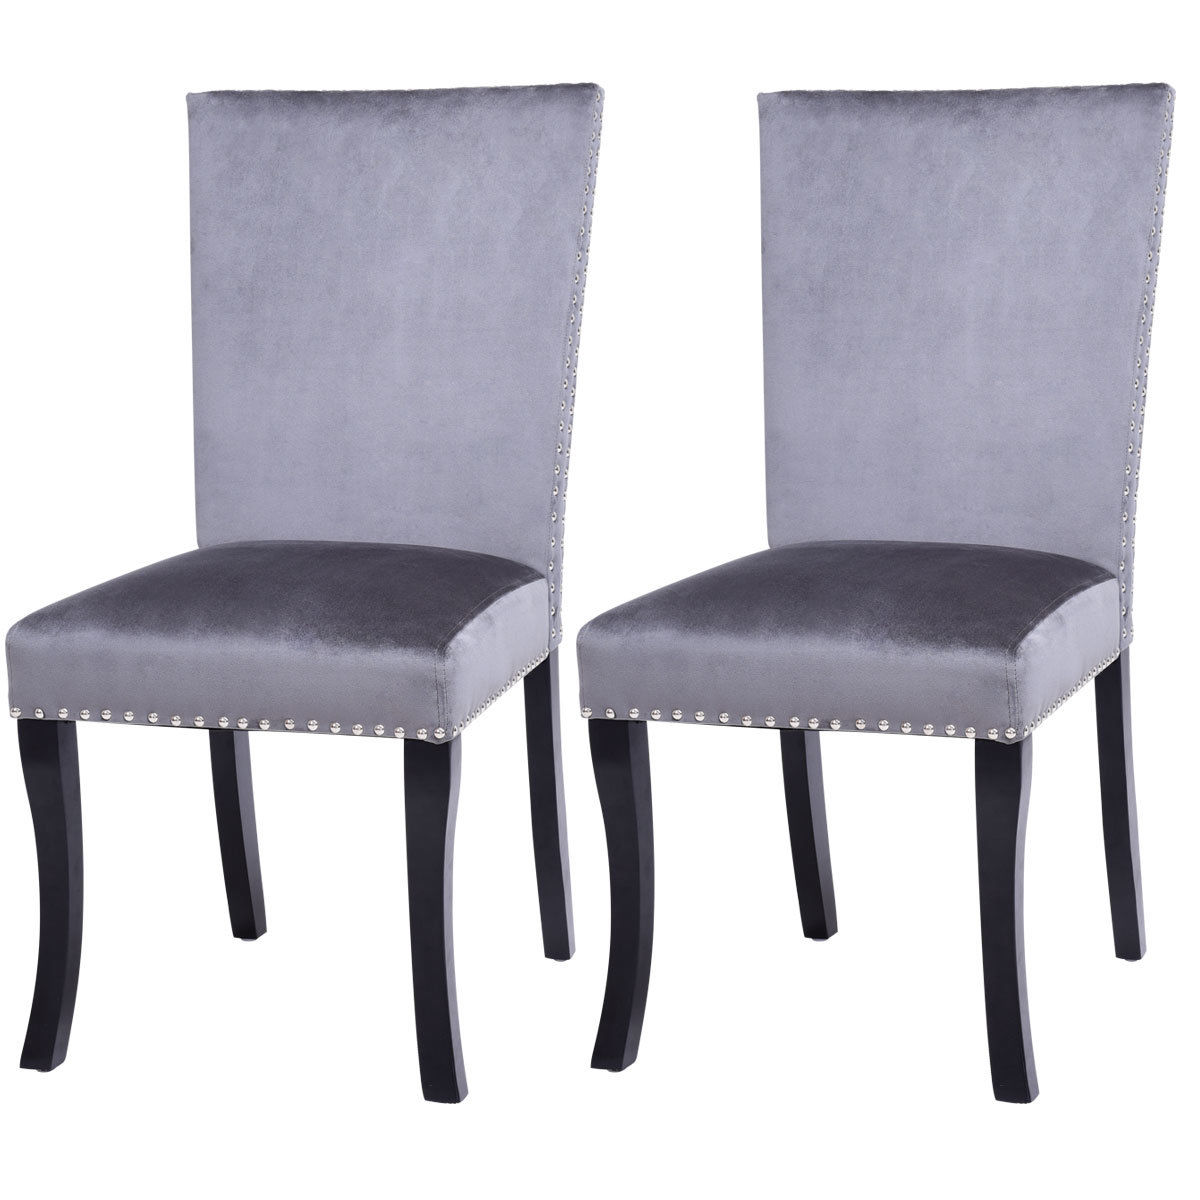 Costway Set of 2 Dining Chairs Nailhead Upholstered Padded Seat Armless Solid Wood Legs